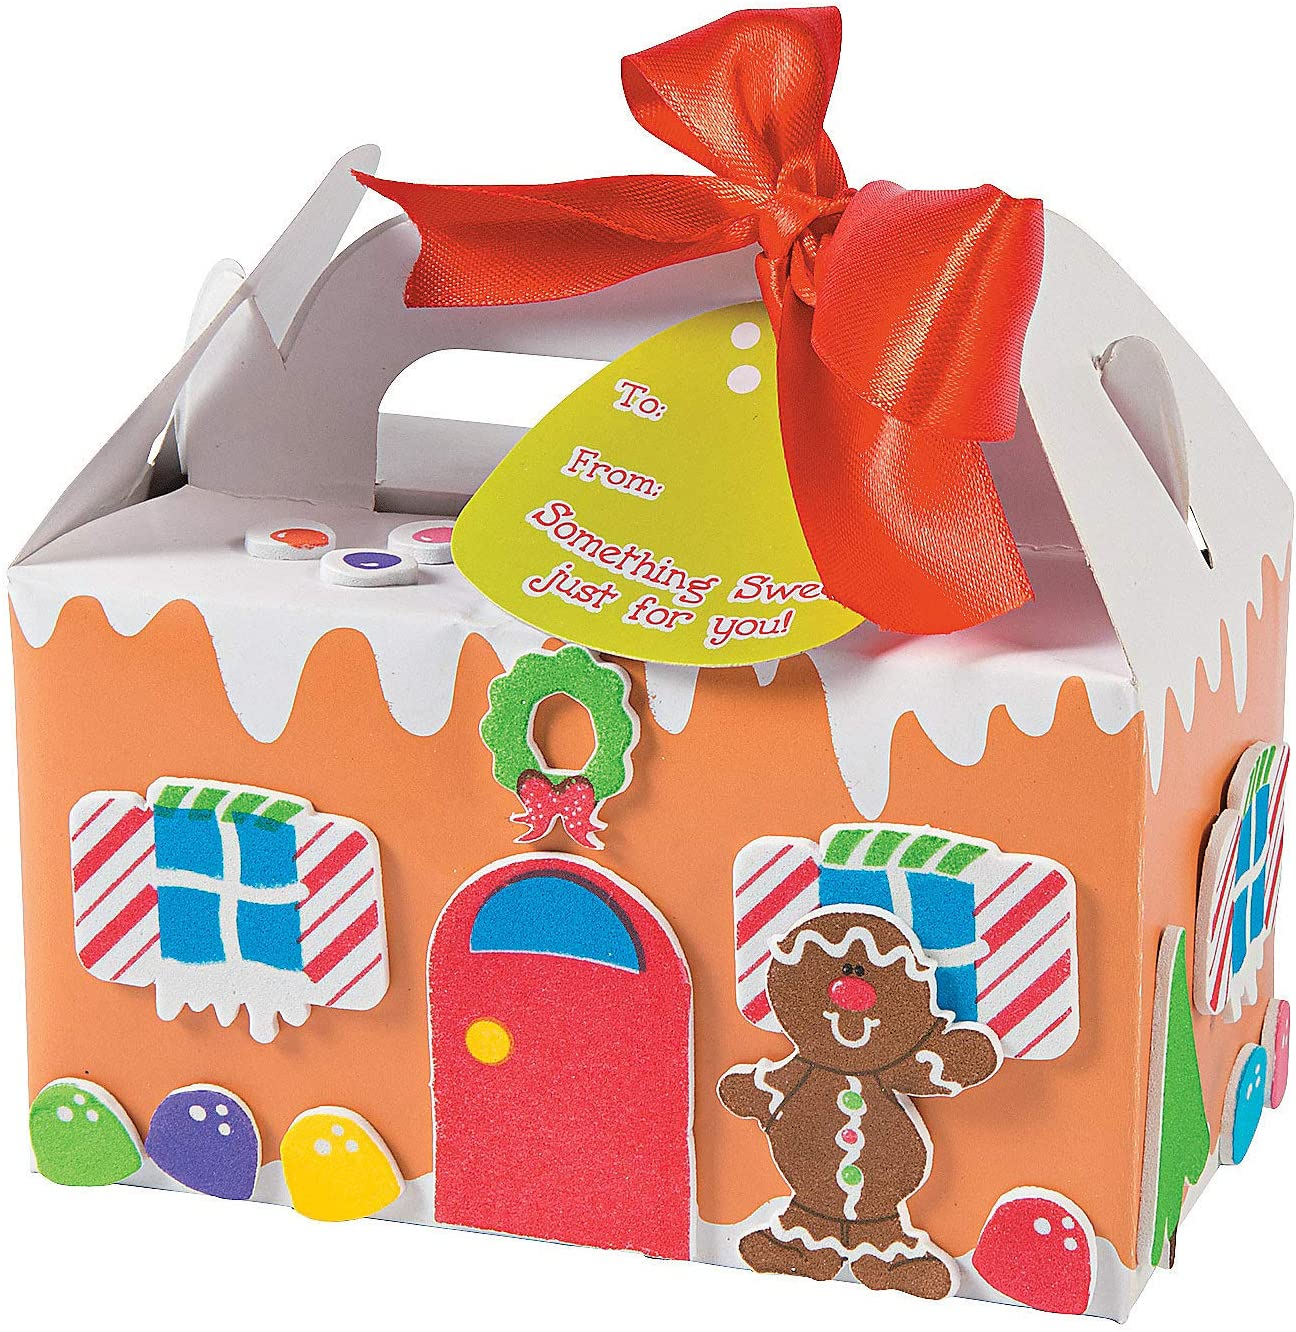 Amazon Com Gingerbread Treat Box Kids Craft Kit Crafts For Kids And Fun Home Activities Toys Games